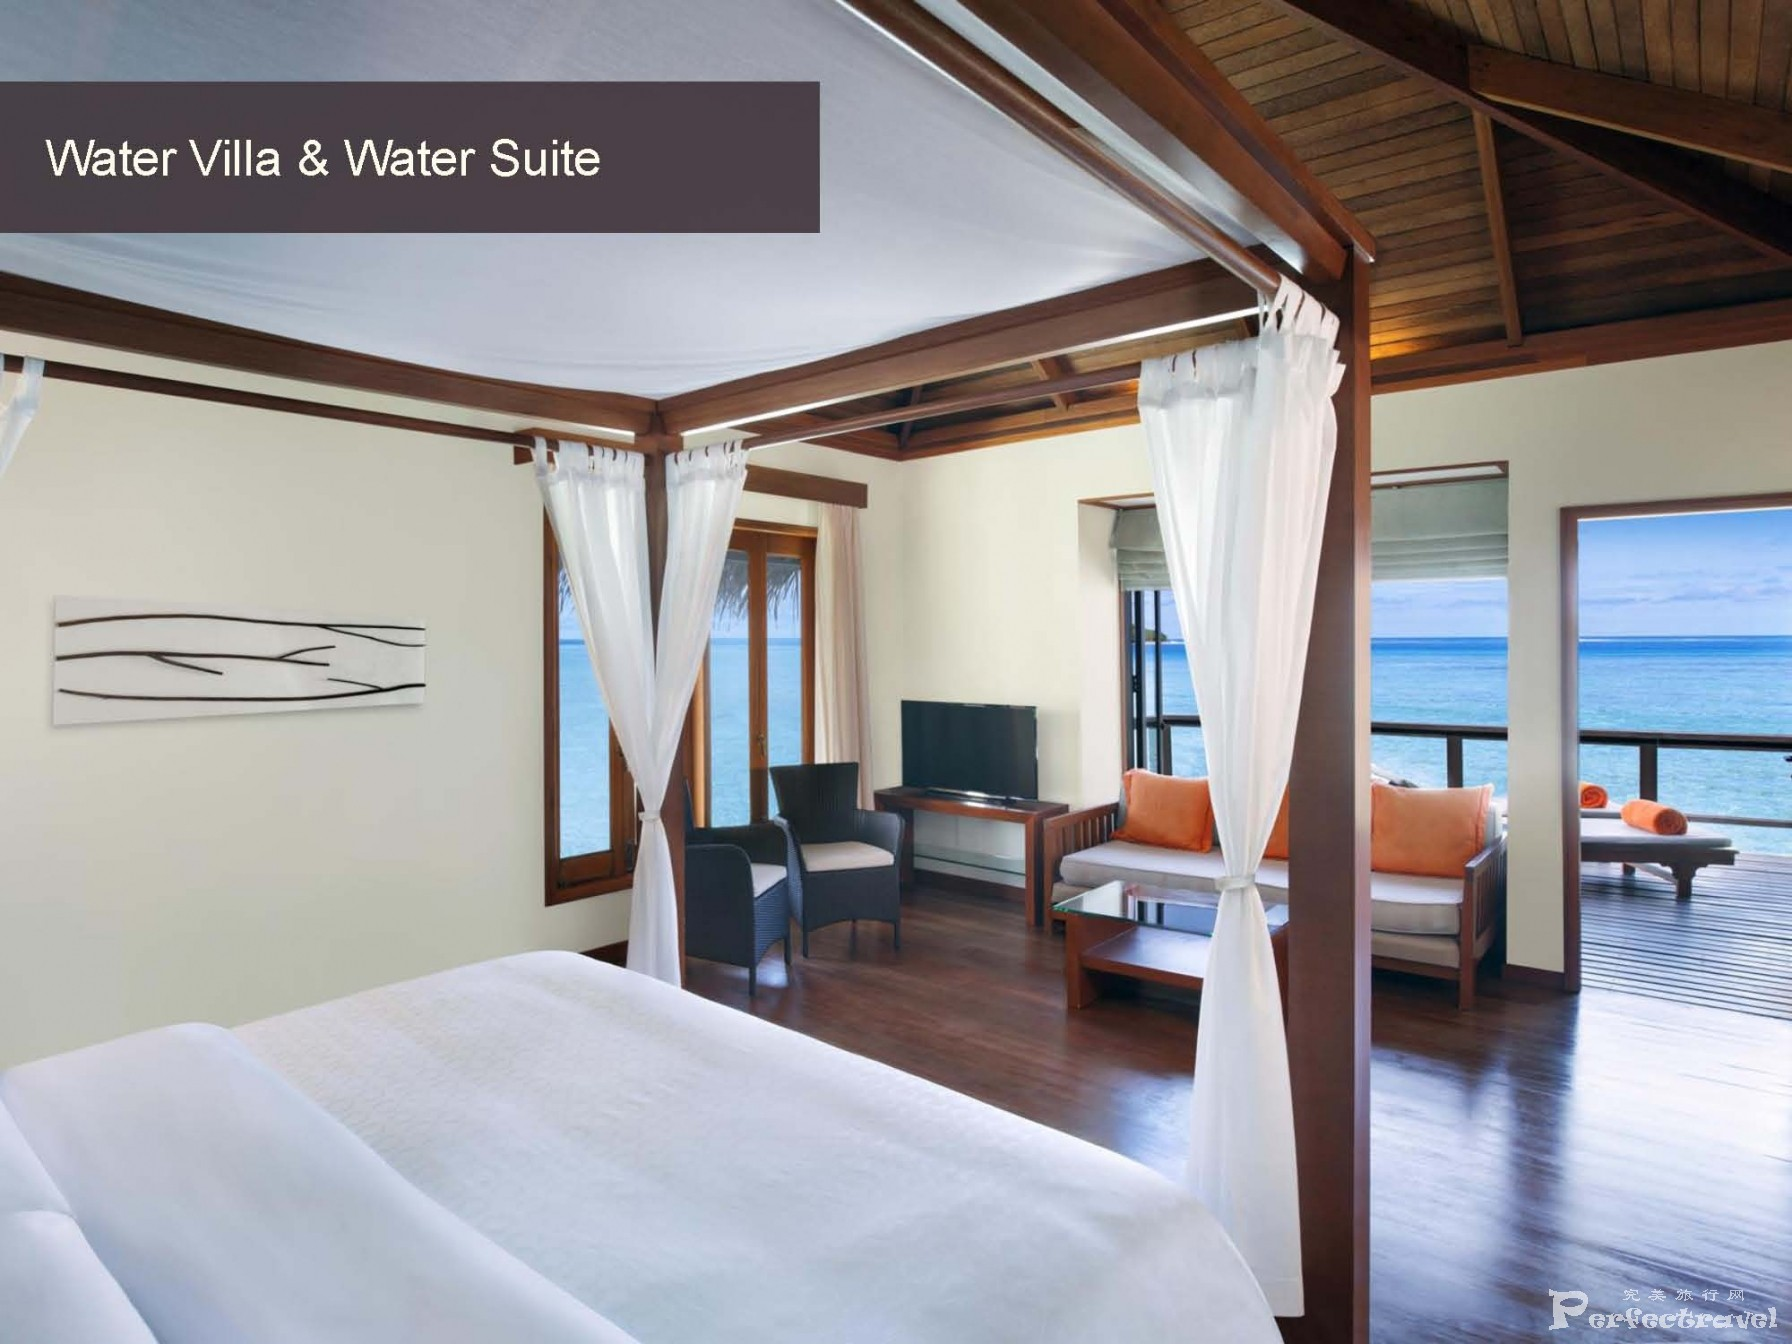 Sheraton Maldives - Overview Presentation 2015_Page_12.jpg